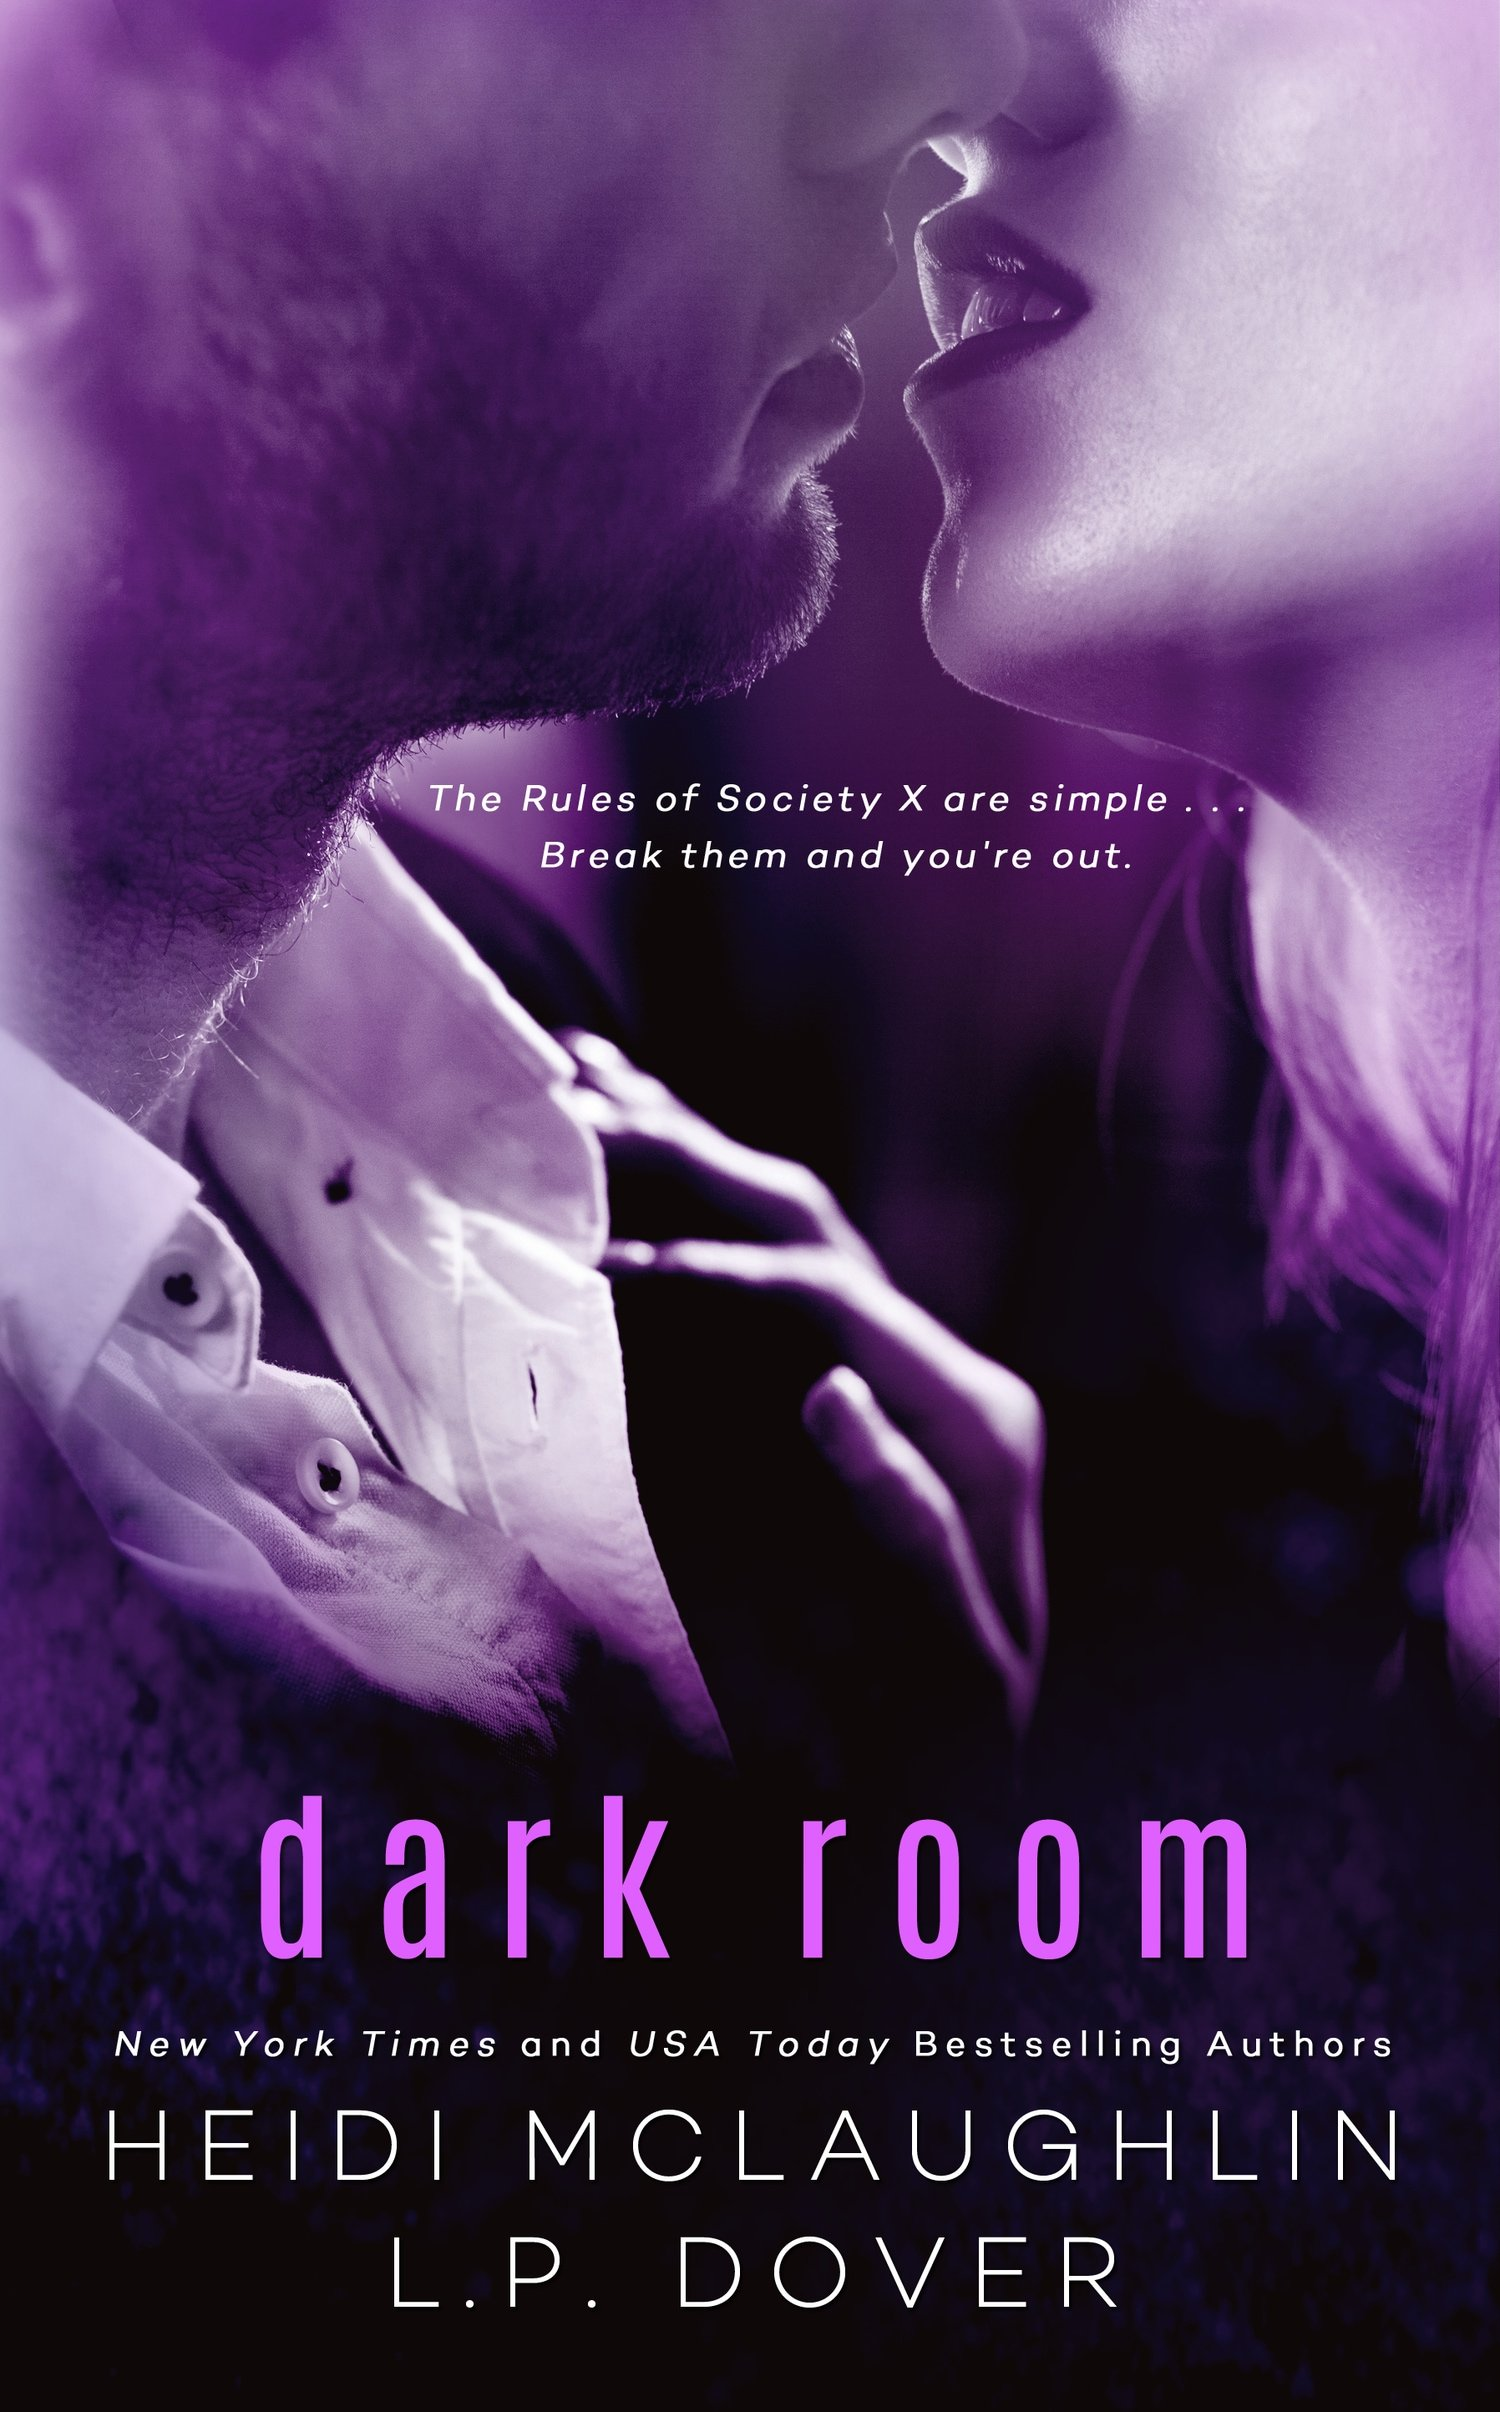 DARK ROOM has a new LOOK!